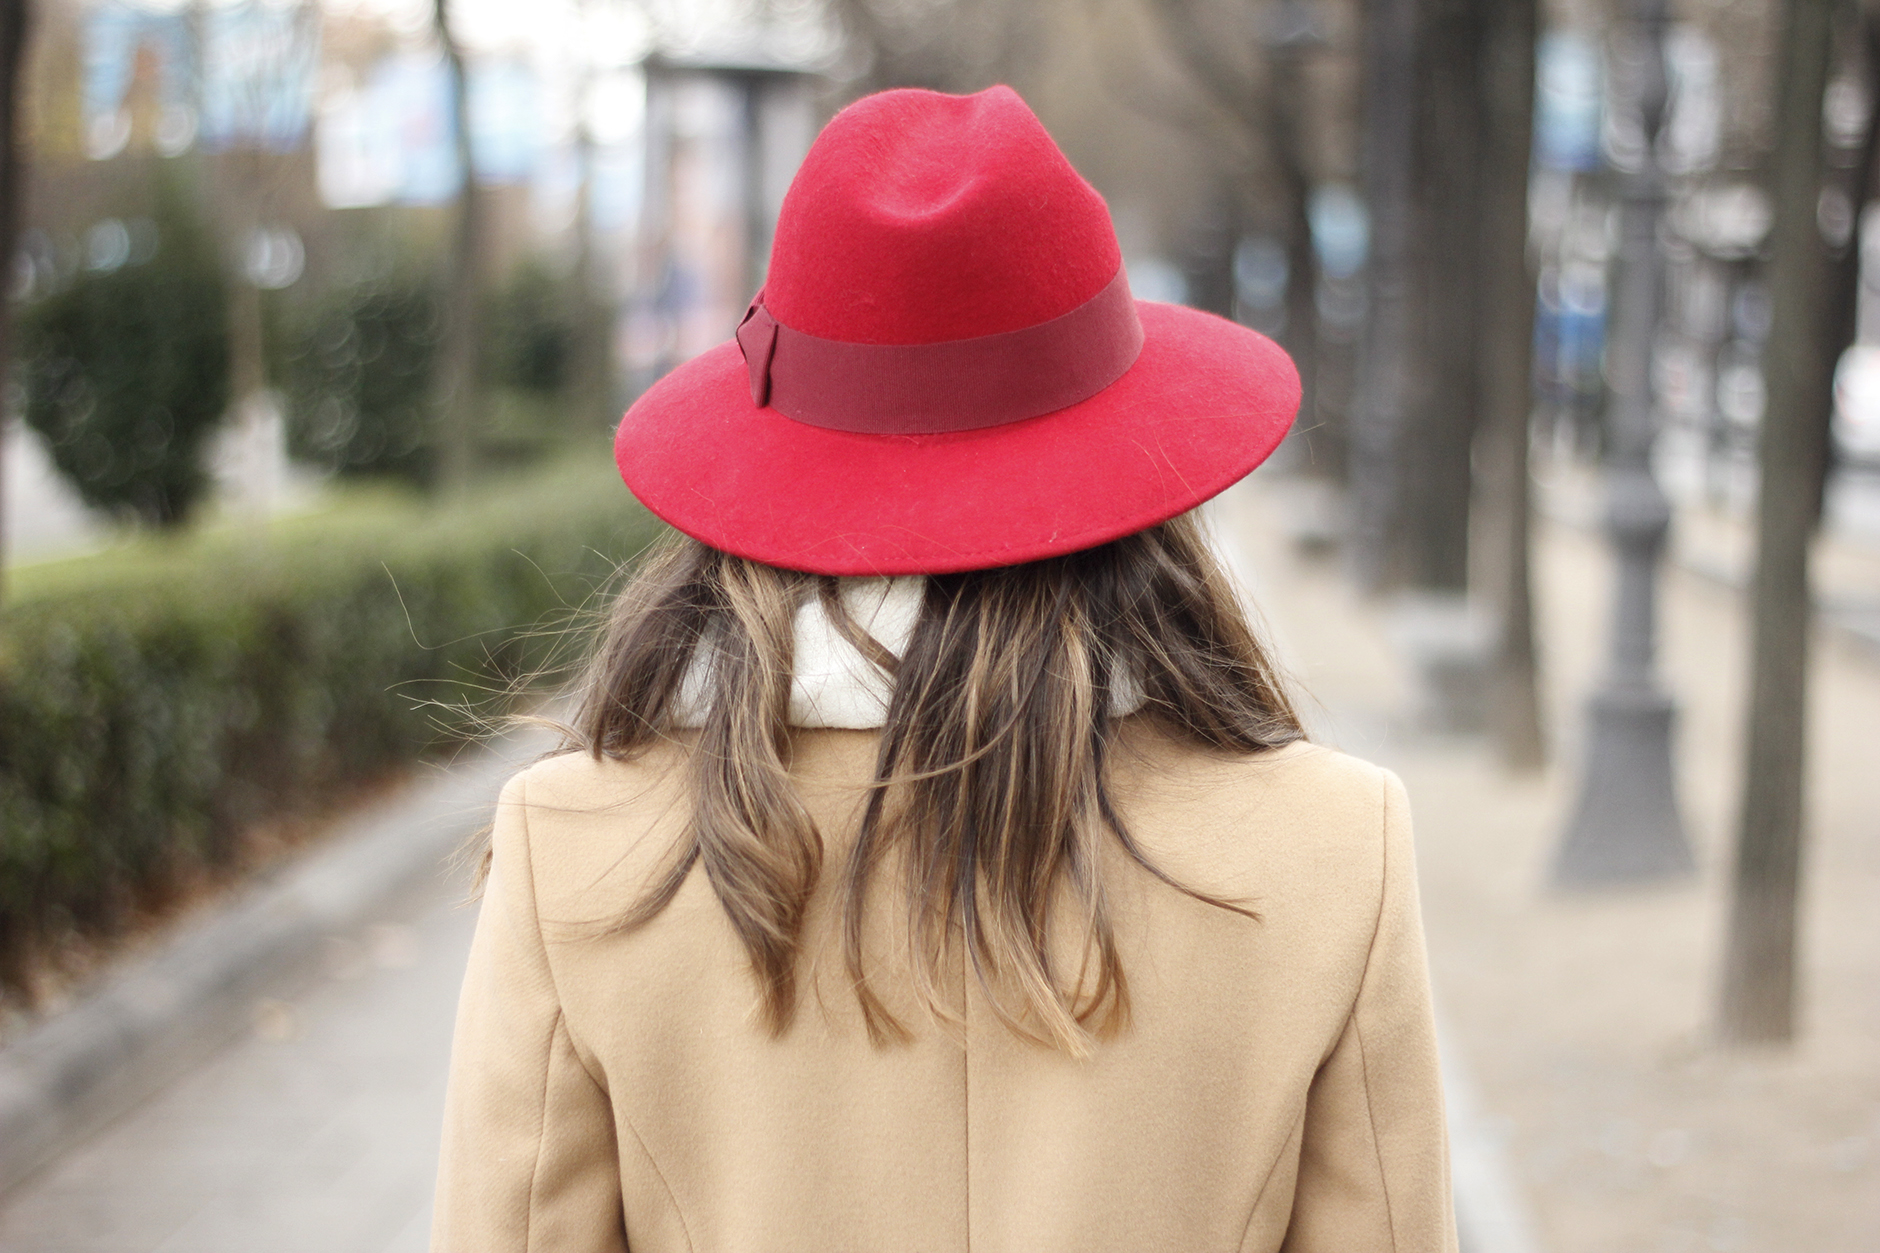 Camel Coat Red Hat Black Heels White pants streetstyle outfit22